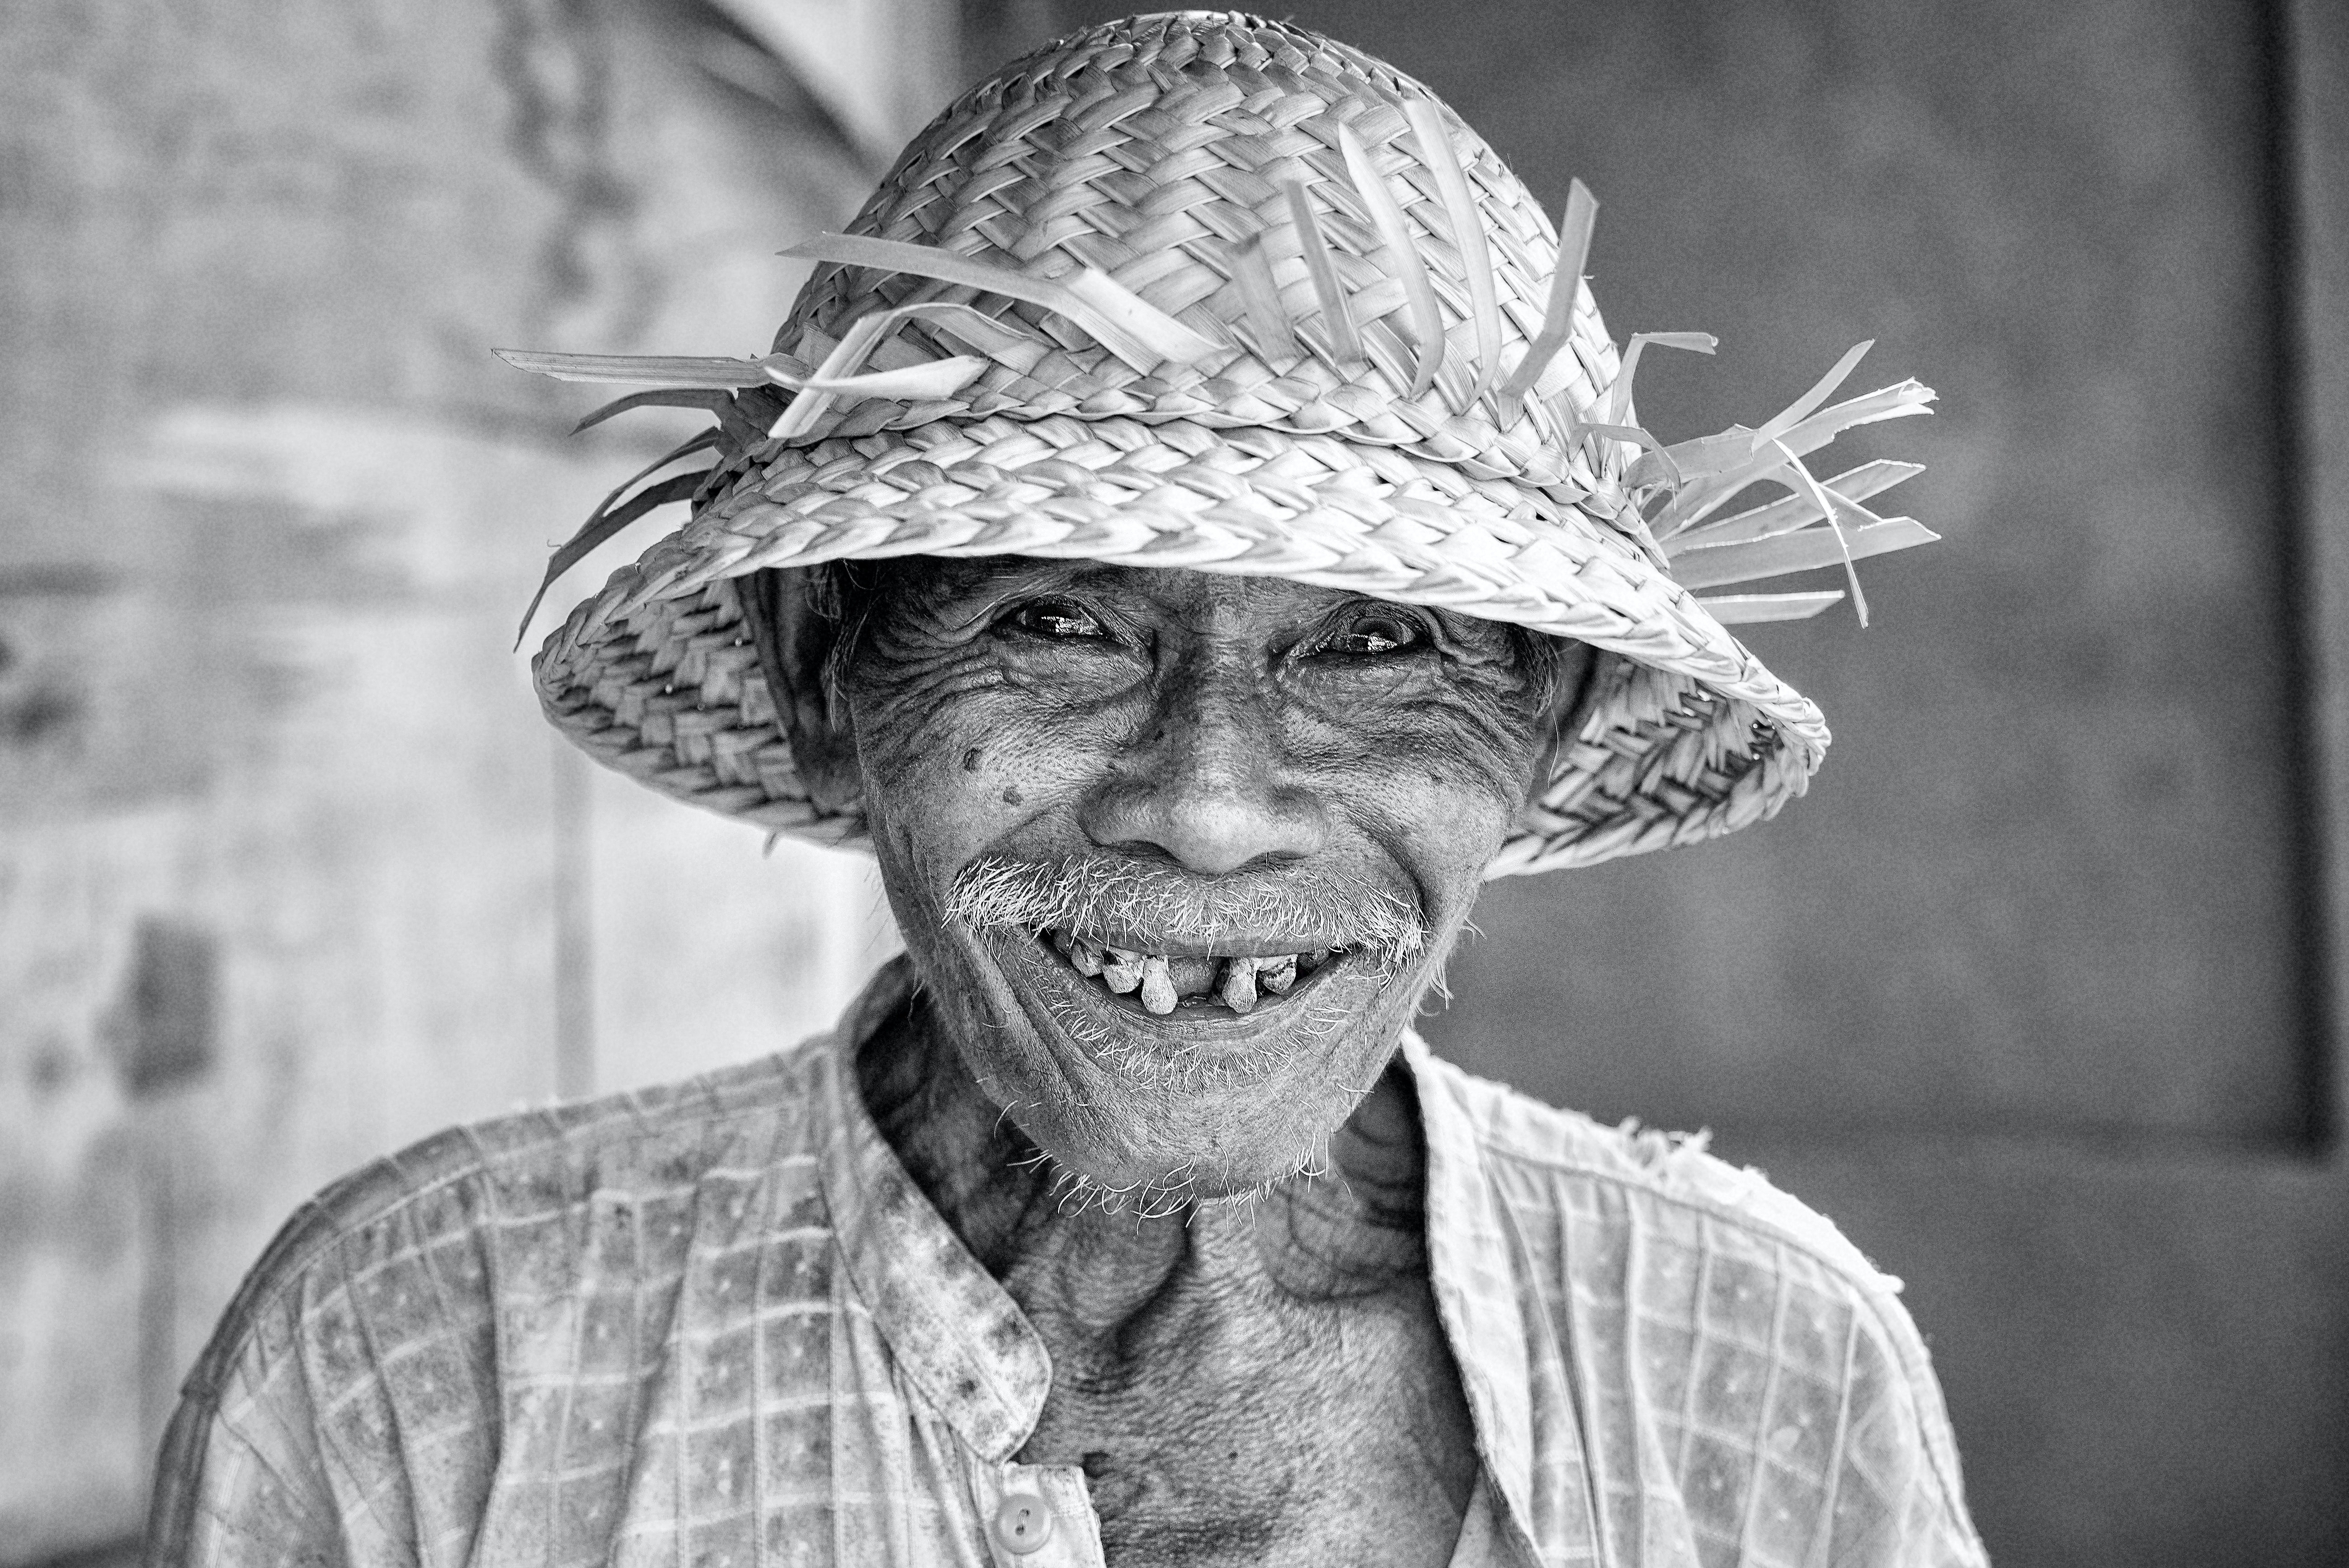 grayscale photo of man smiling wearing straw hat